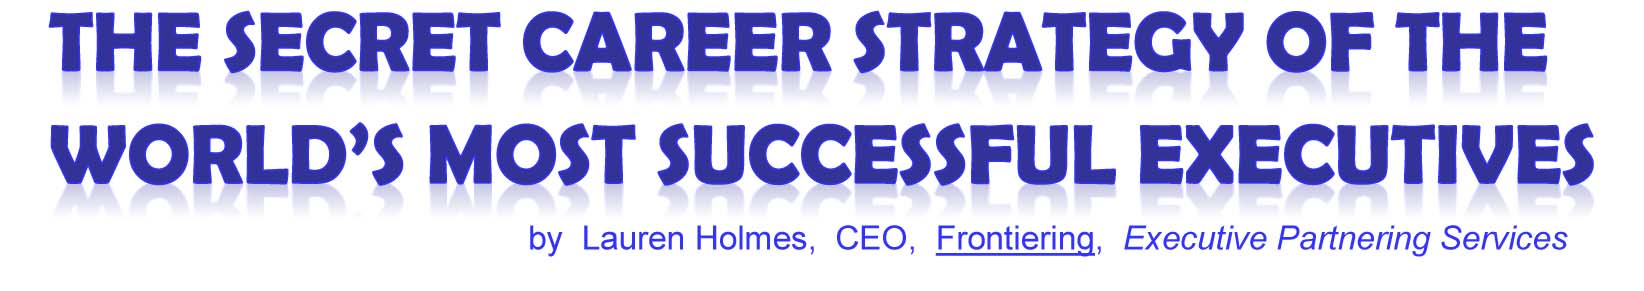 The Secret Career Strategy of the World's most Successful Executives